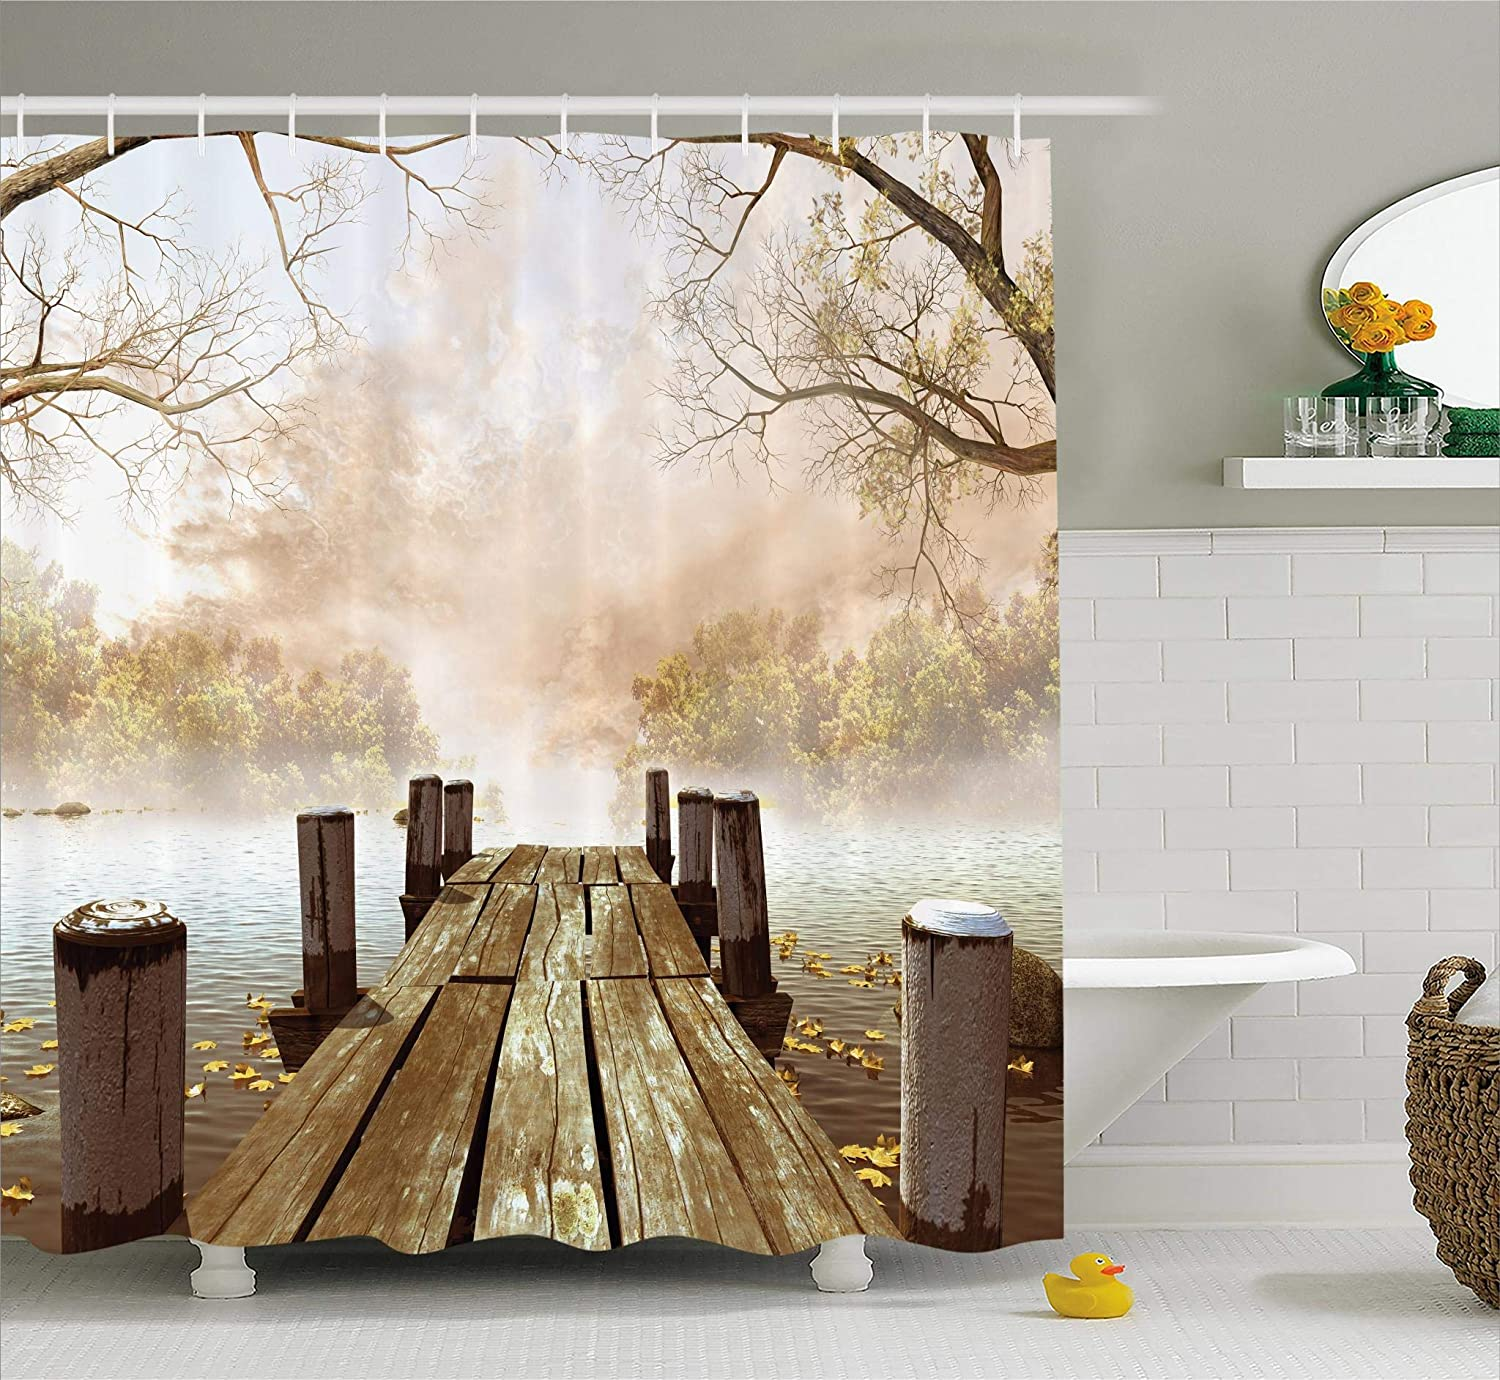 Ambesonne shower curtain collection ocean decor fall wooden bridge seasons lake house nature country rustic home art paintings pictures for bathroom